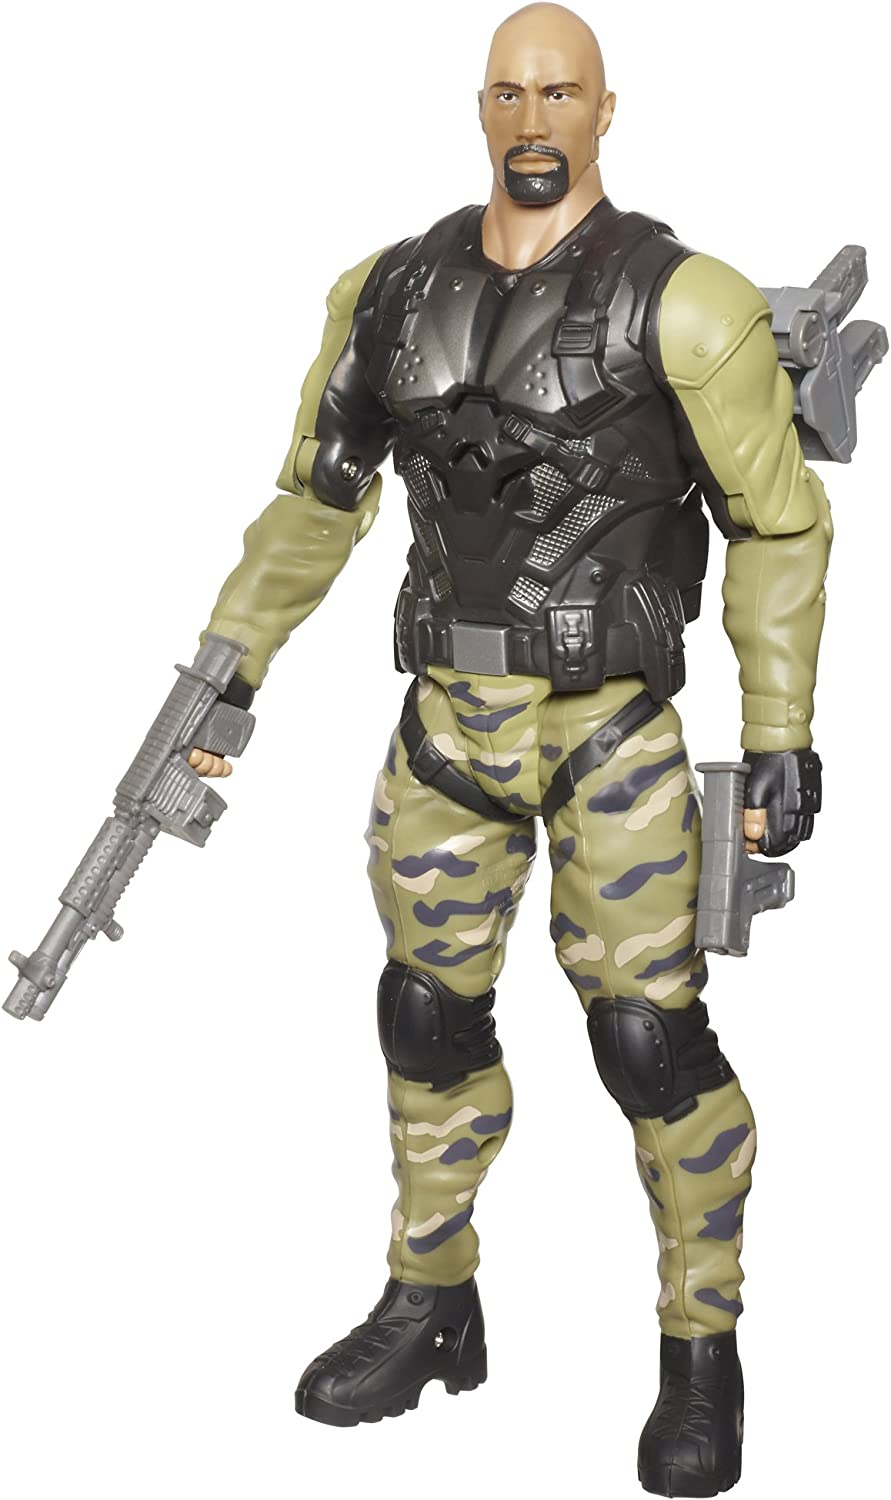 GI Joe Retaliation Ninja Commando Roadblock Figure